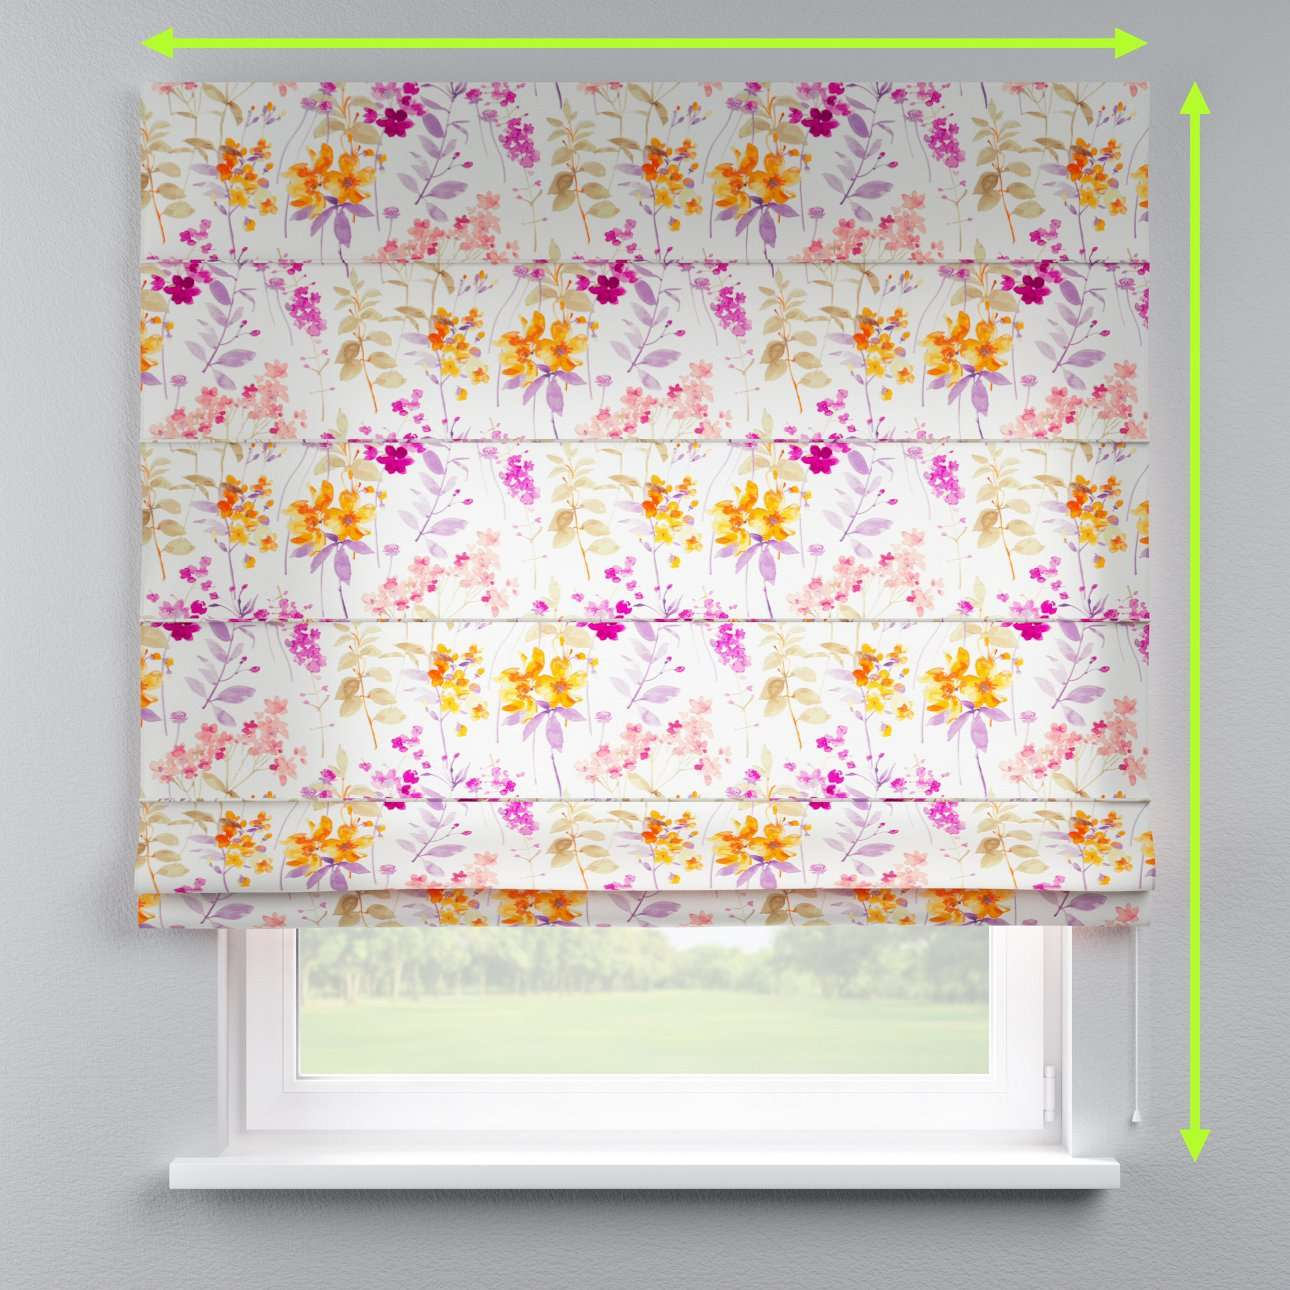 Capri roman blind in collection Monet, fabric: 140-04